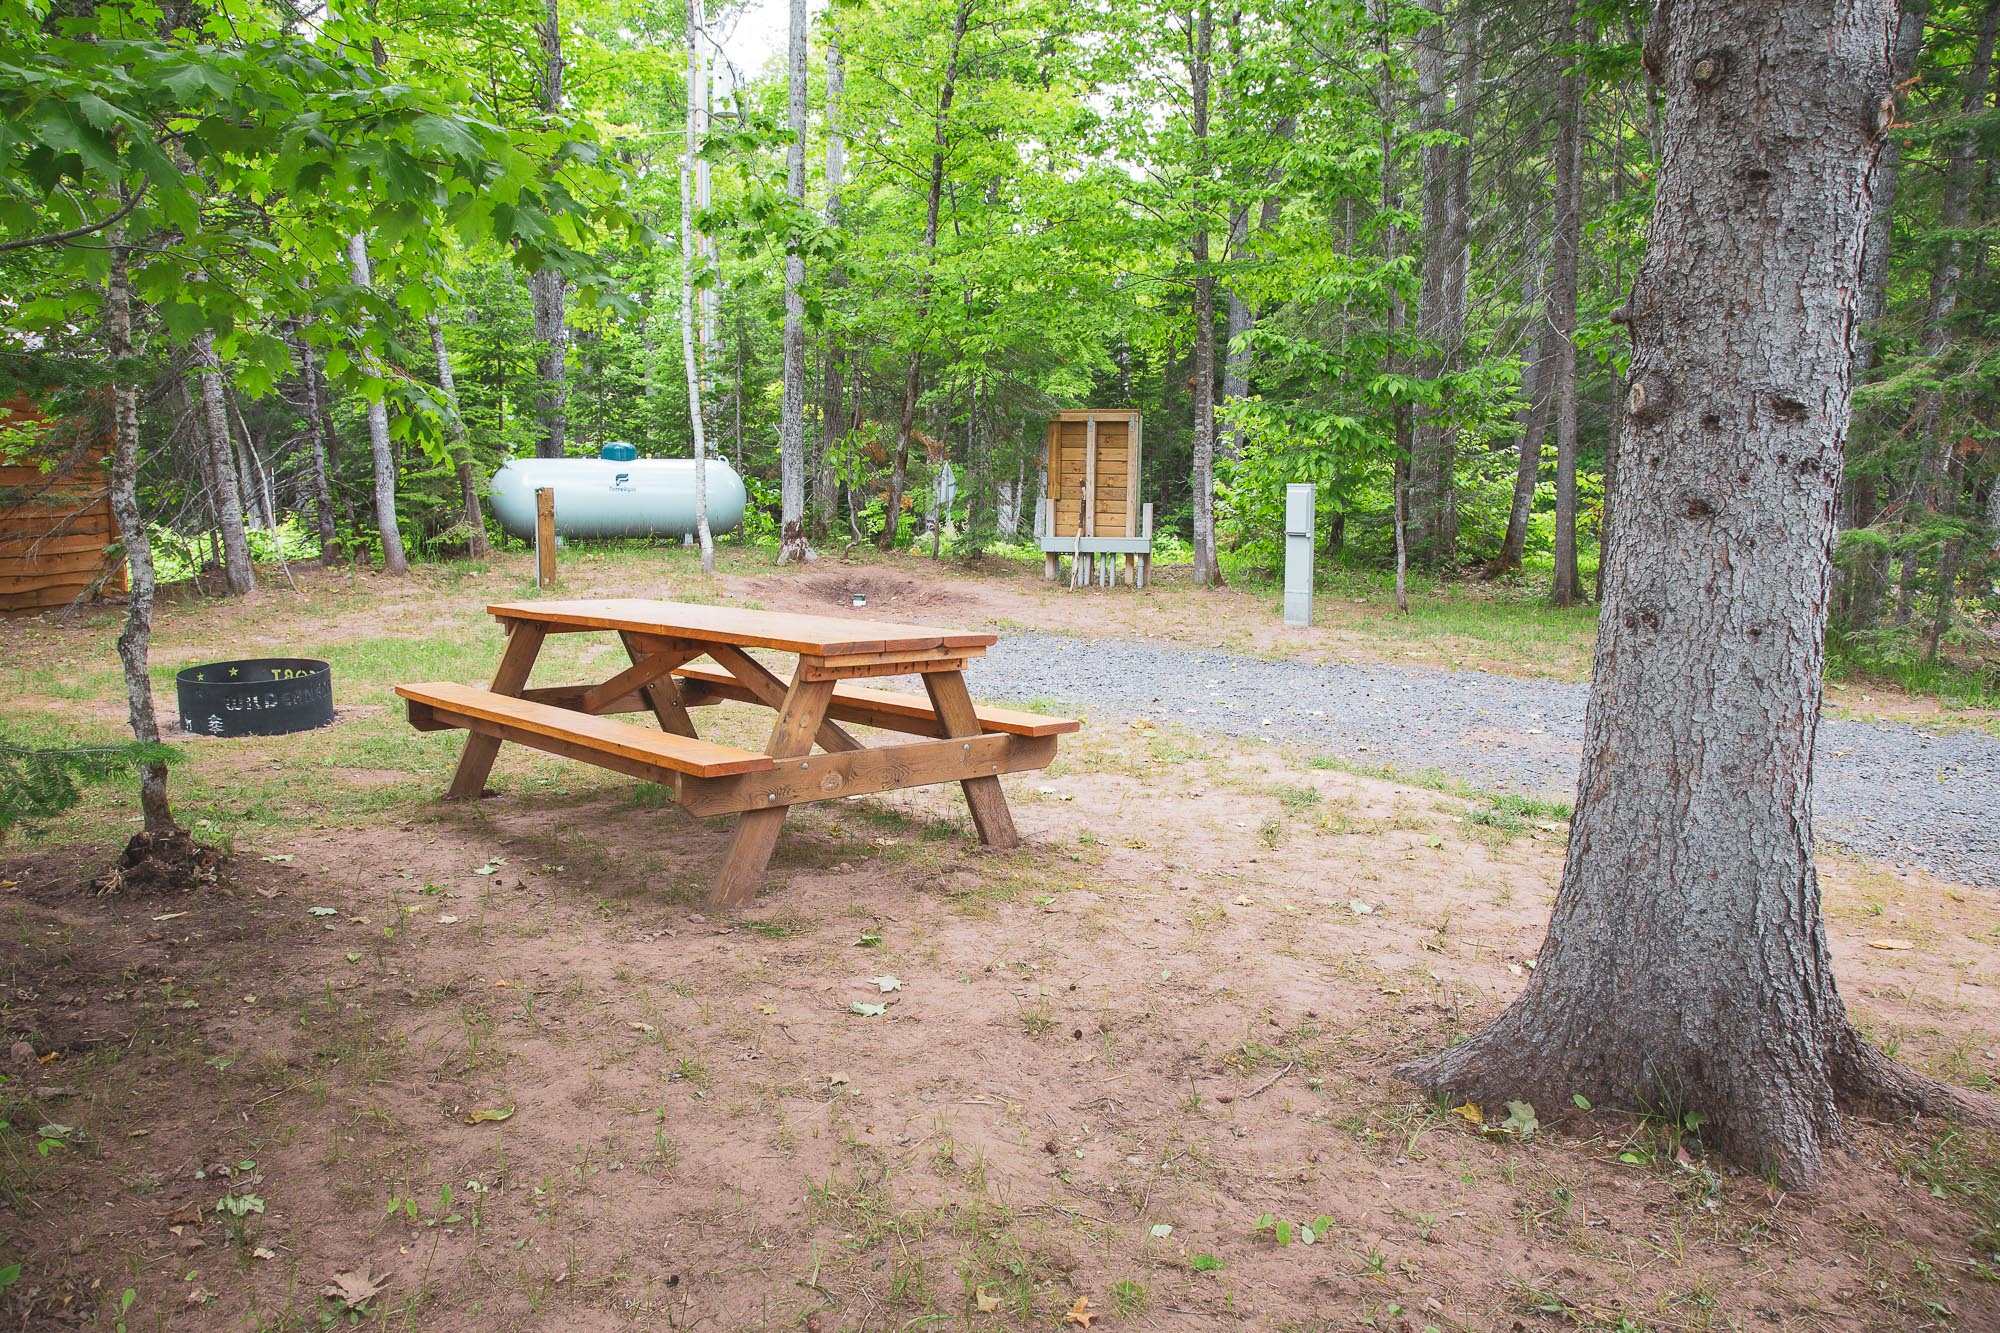 Photo of Campground Site 1 at the Wilderness Resort in Lac La Belle Michigan